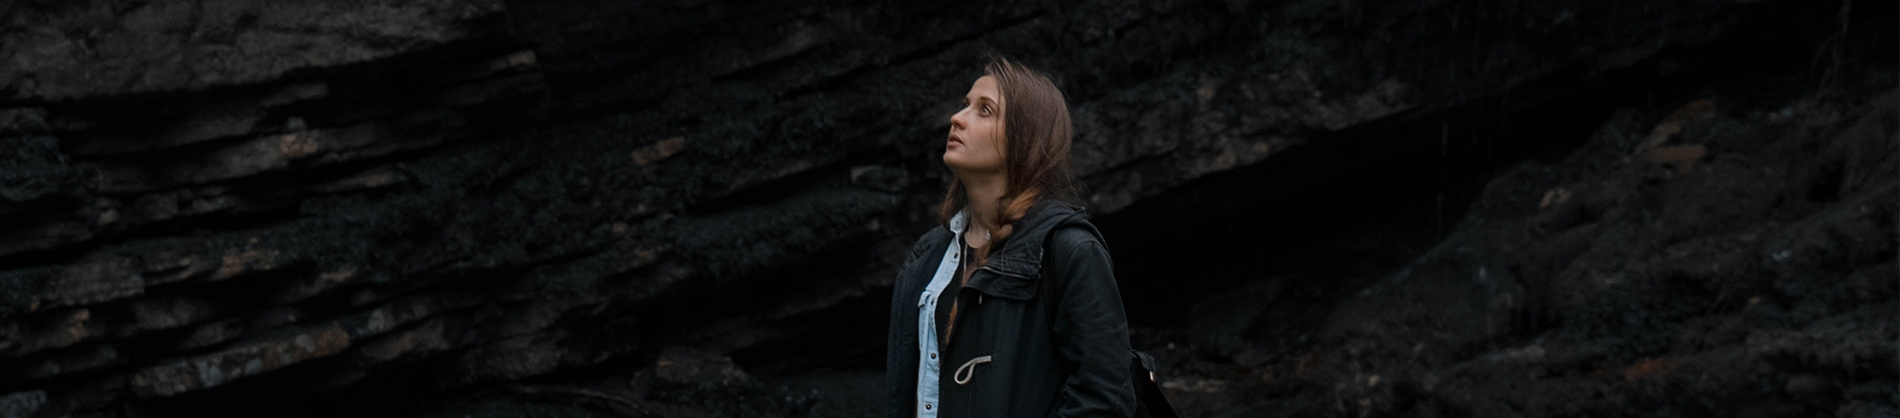 A woman stood in front of a rock face, looking up to the sky